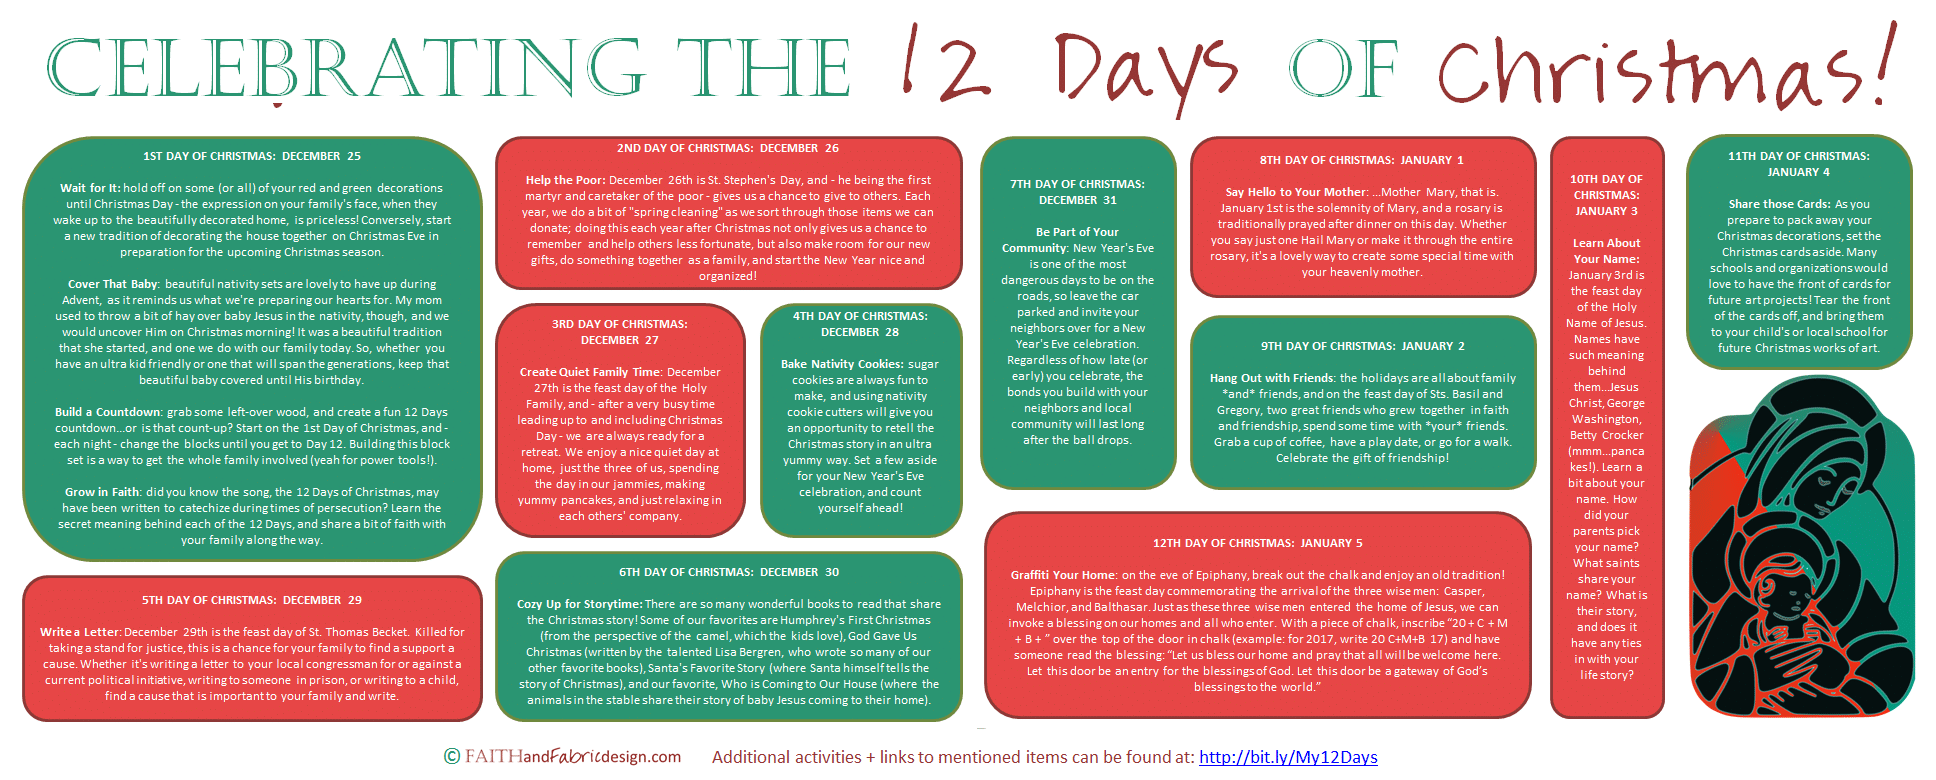 image about 12 Days of Christmas Printable titled Entertaining and Straightforward Methods towards Rejoice the 12 Times of Xmas